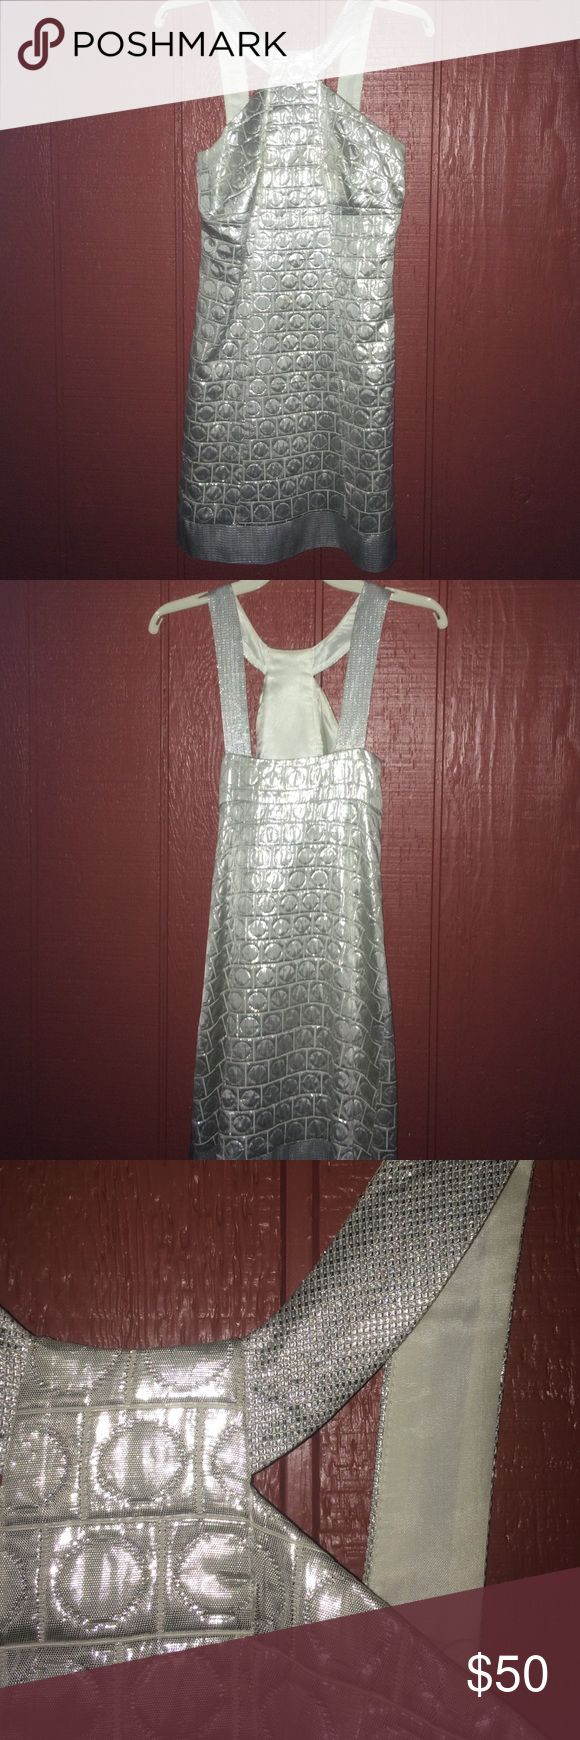 Silver mini dress Silver mini dress by Jessica McClintock. Worn once to a school dance in 2008 😯 lol Jessica McClintock Dresses Mini